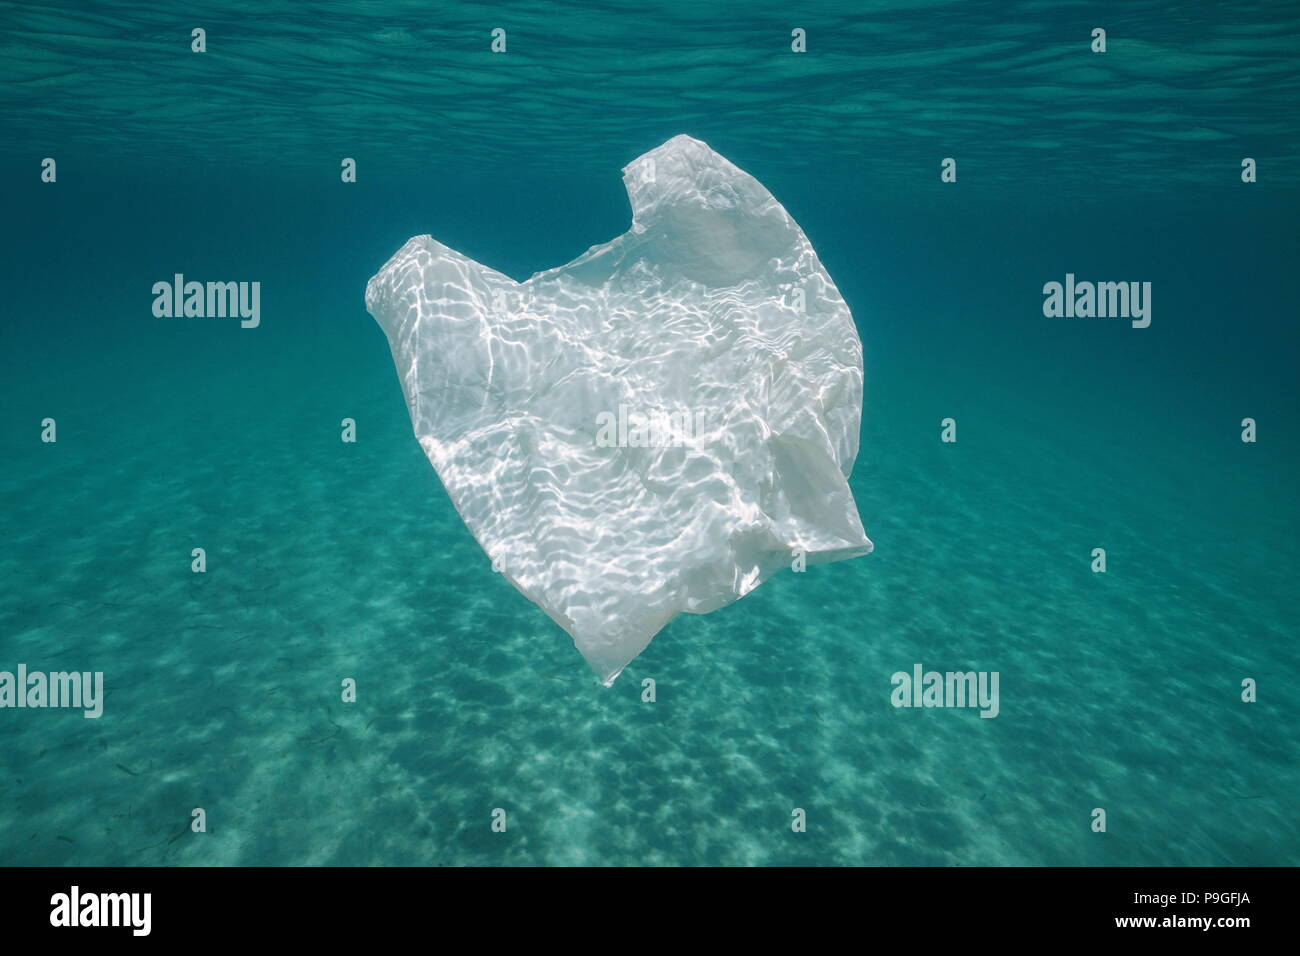 Underwater pollution a plastic bag in the sea between water surface and a sandy seabed, Mediterranean, Almeria, Andalusia, Spain - Stock Image